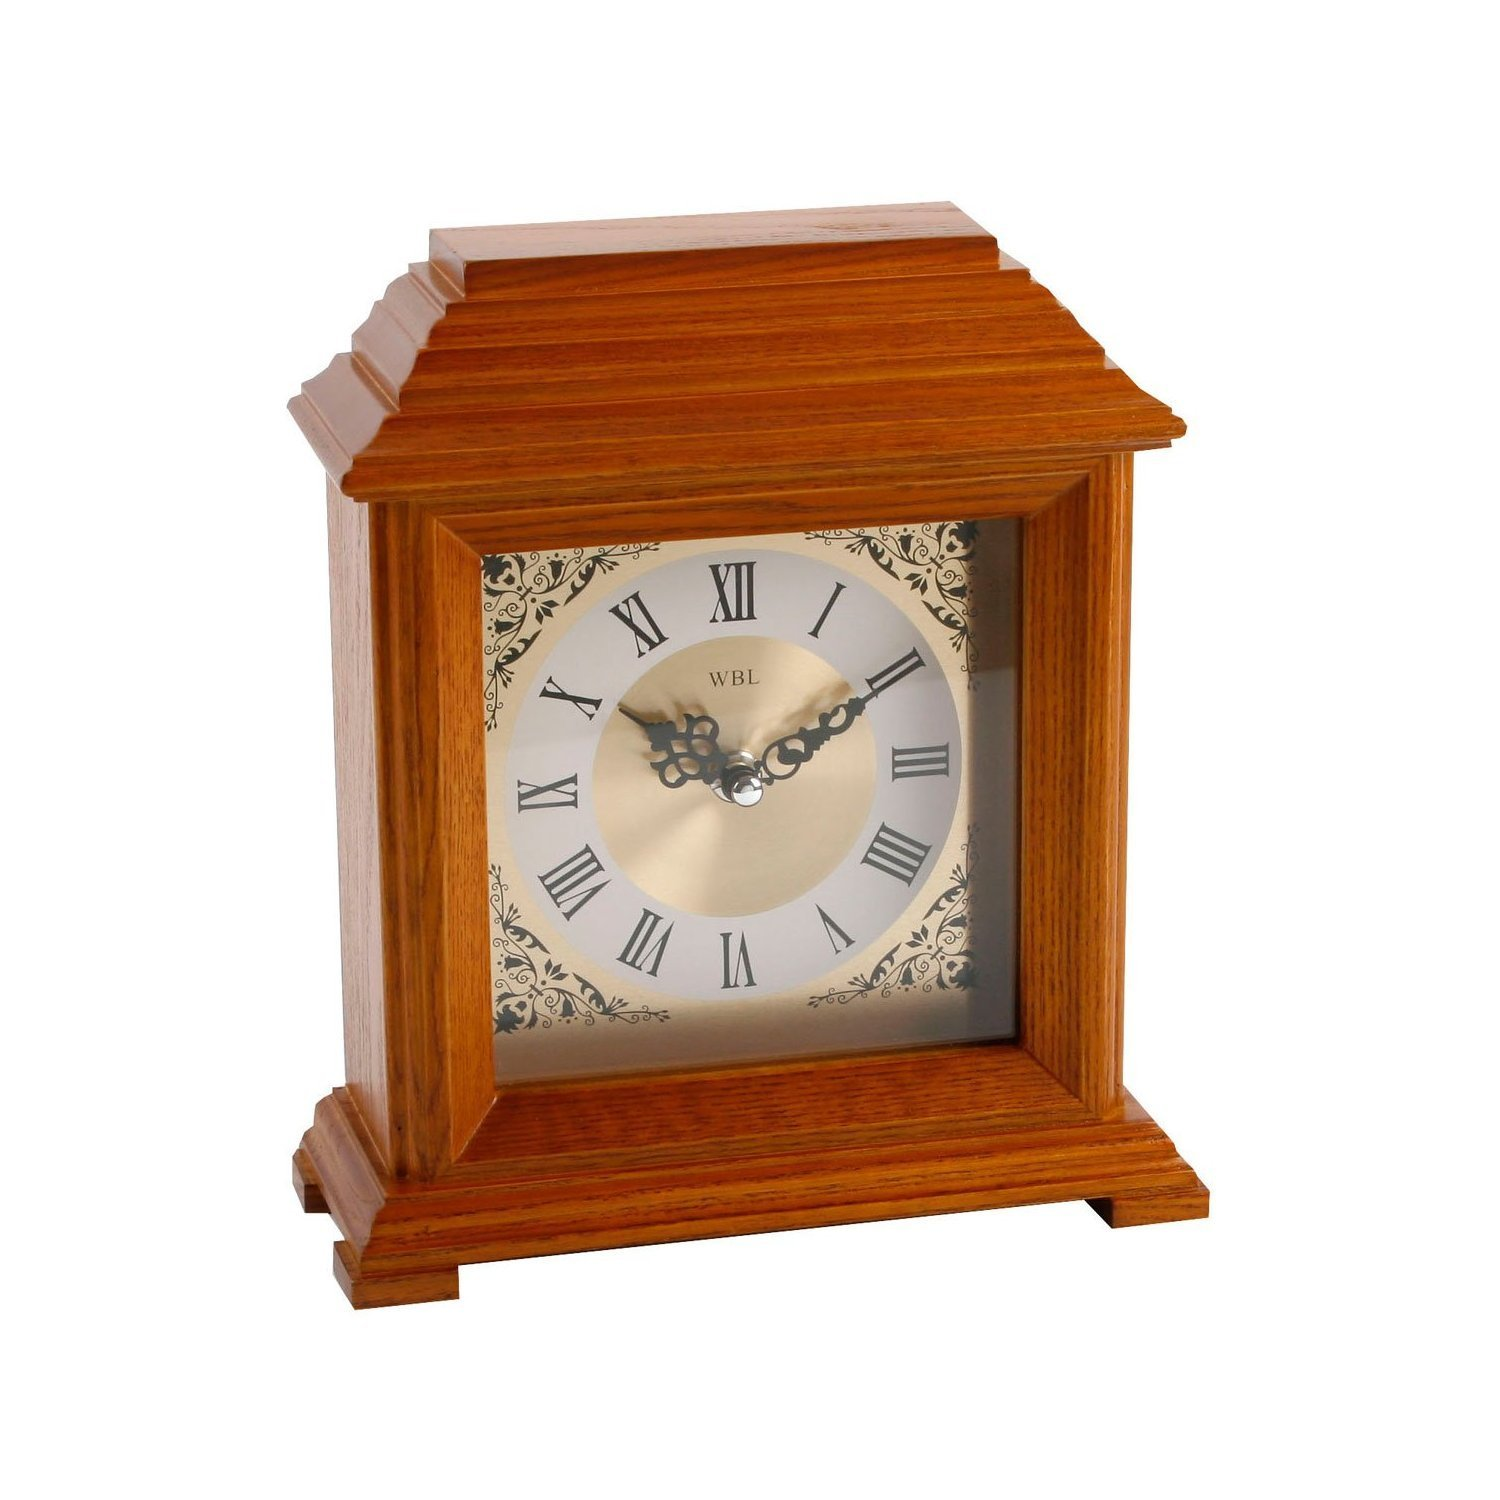 23cm Ornate Square Pillar Design Wooden Mantel Clock with Fancy Dial Watching Clocks